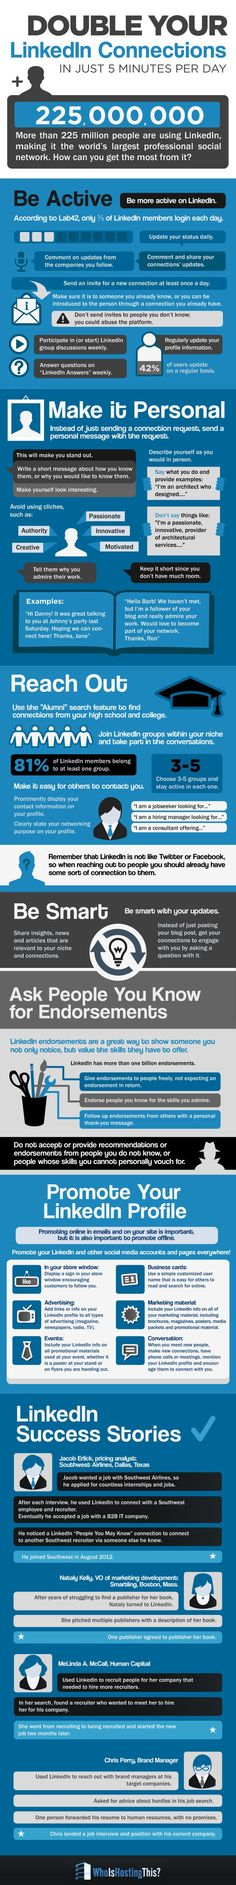 Get the Most Out of LinkedIn with These Easy Tips via @Brazen Careerist